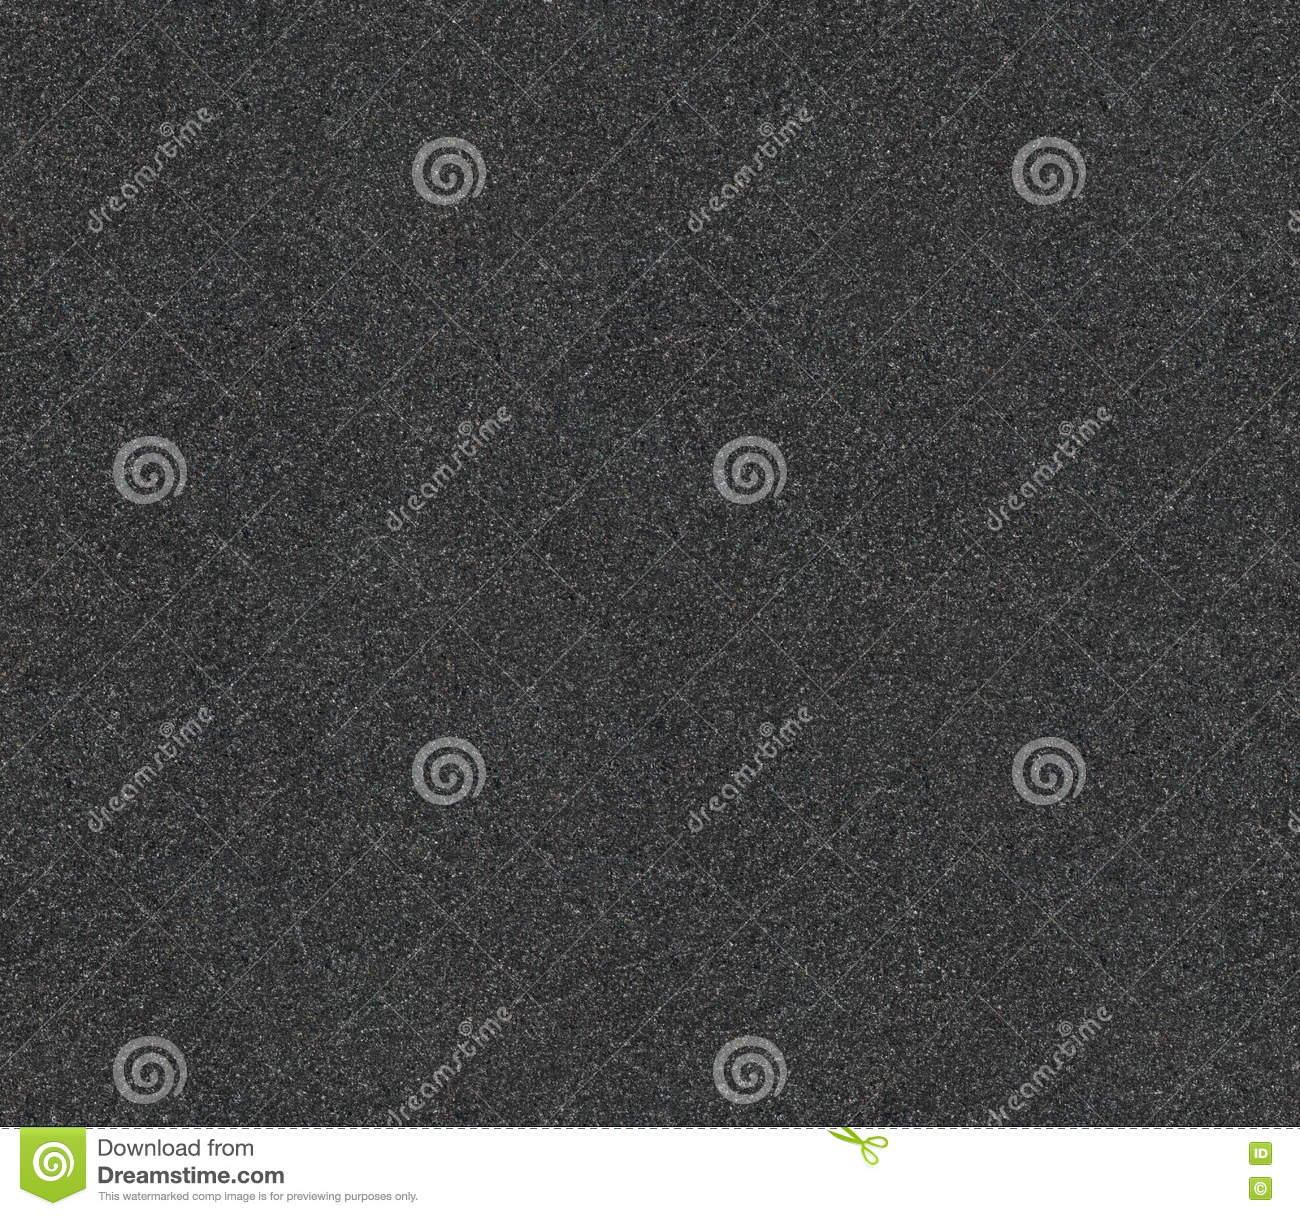 Asphalt Texture Top View Stock Photo - Image: 71225313